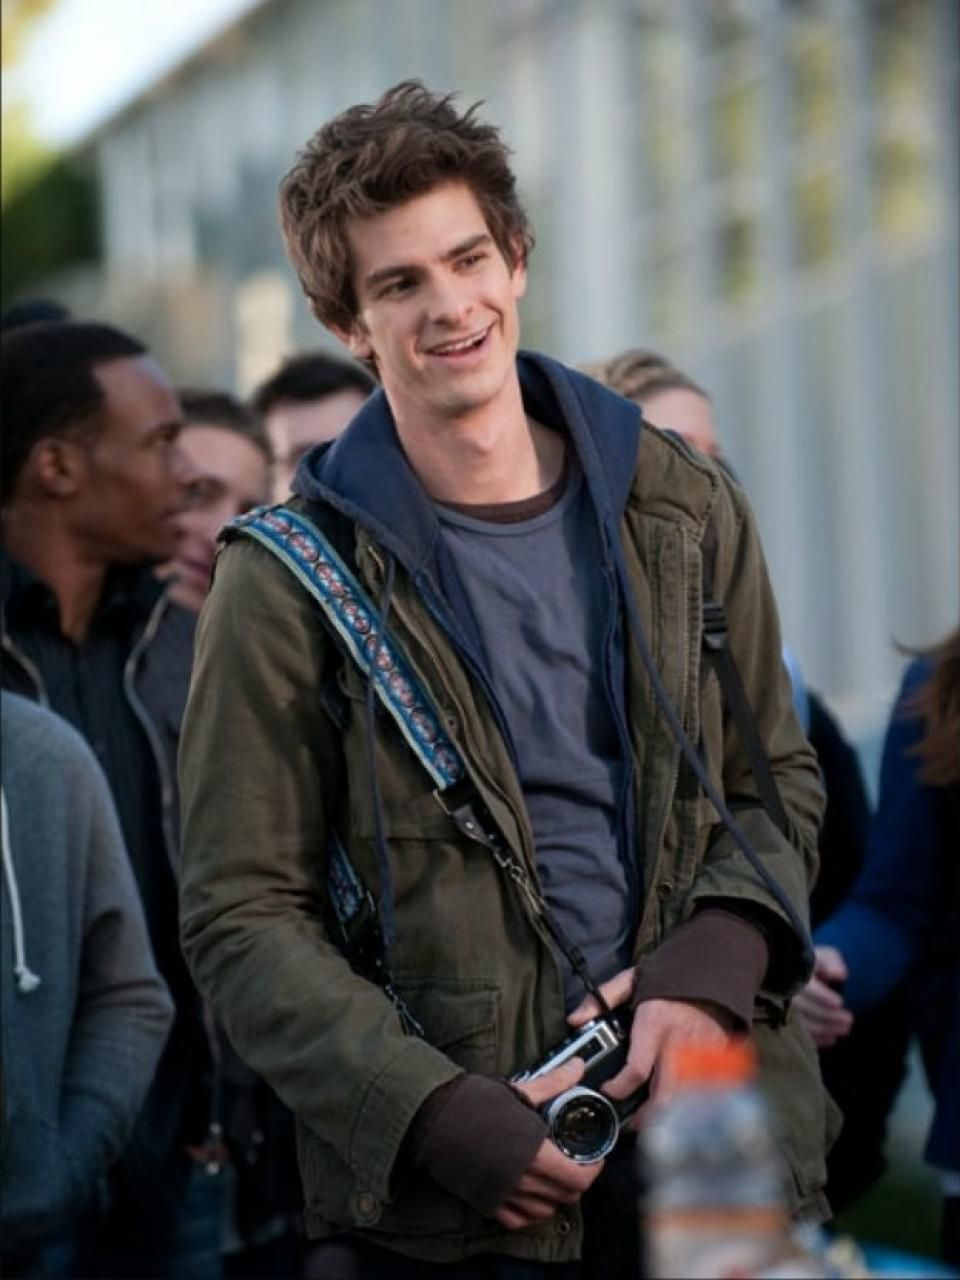 Andrew Garfield The Amazing Spider Man Image 2